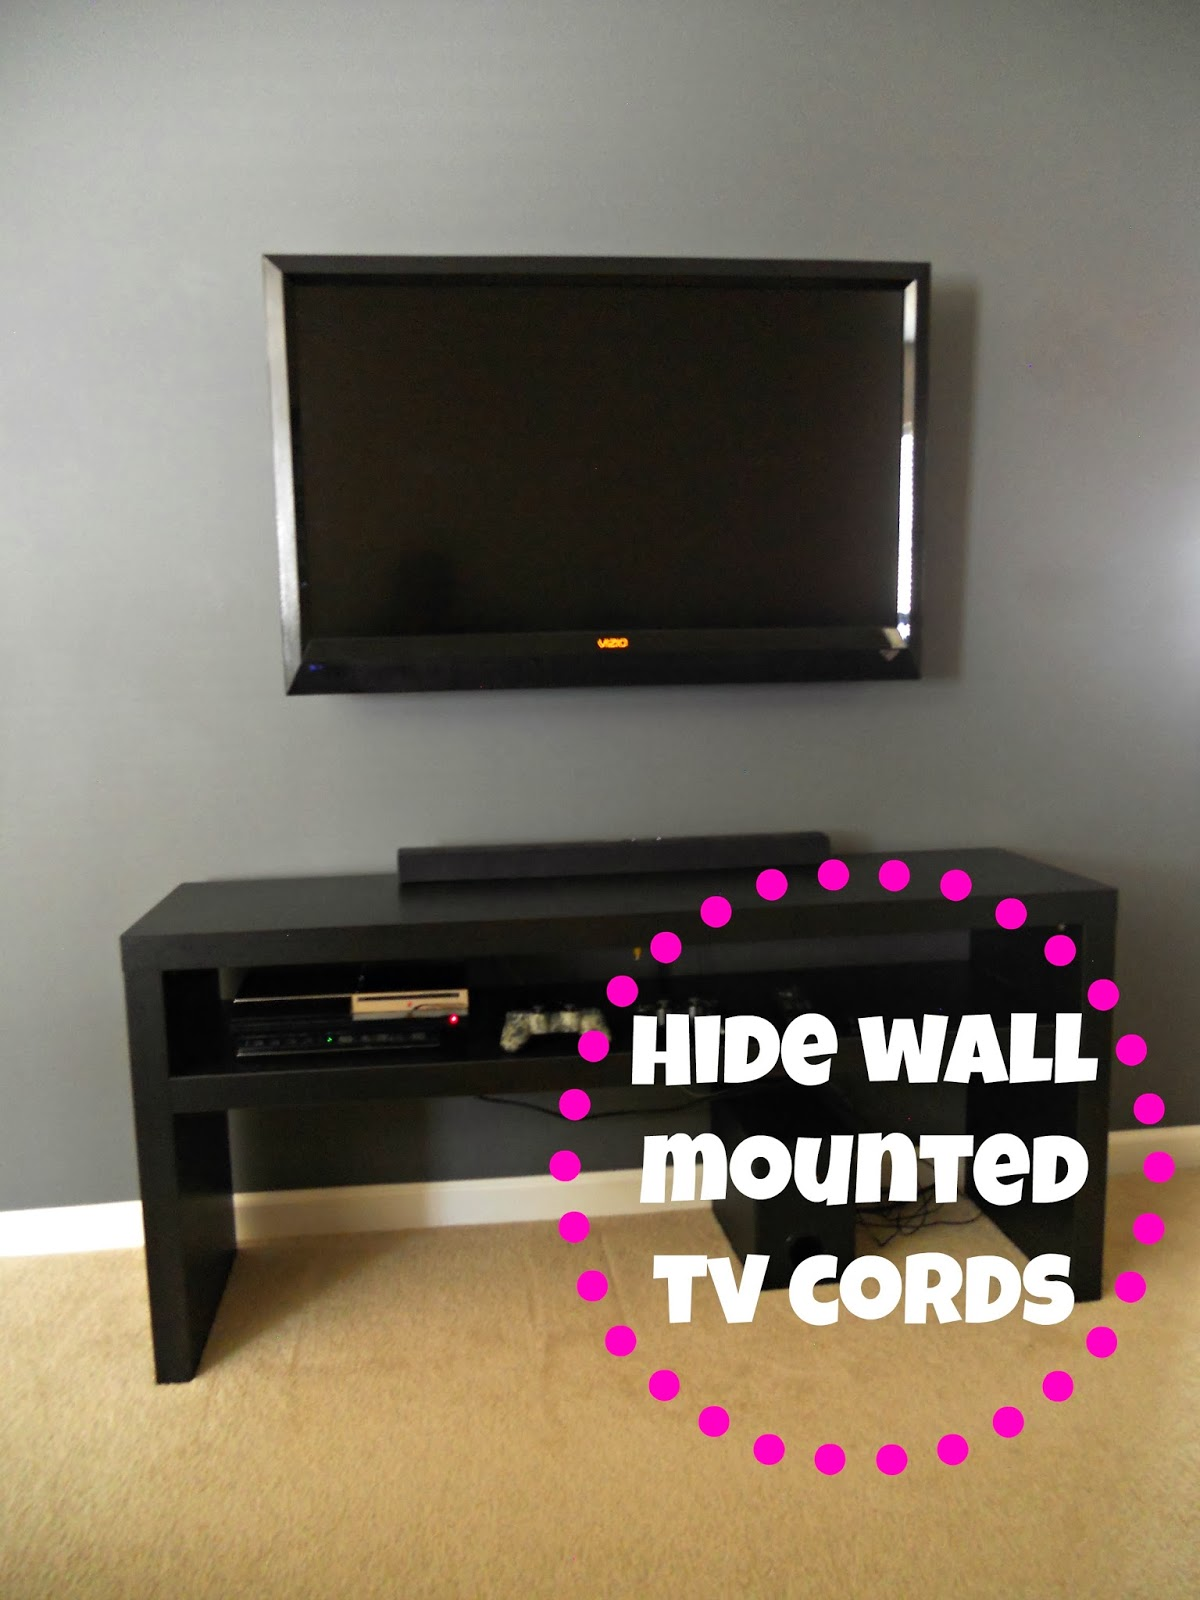 Decorating cents wall mounted tv and hiding the cords How high to mount tv on wall in living room